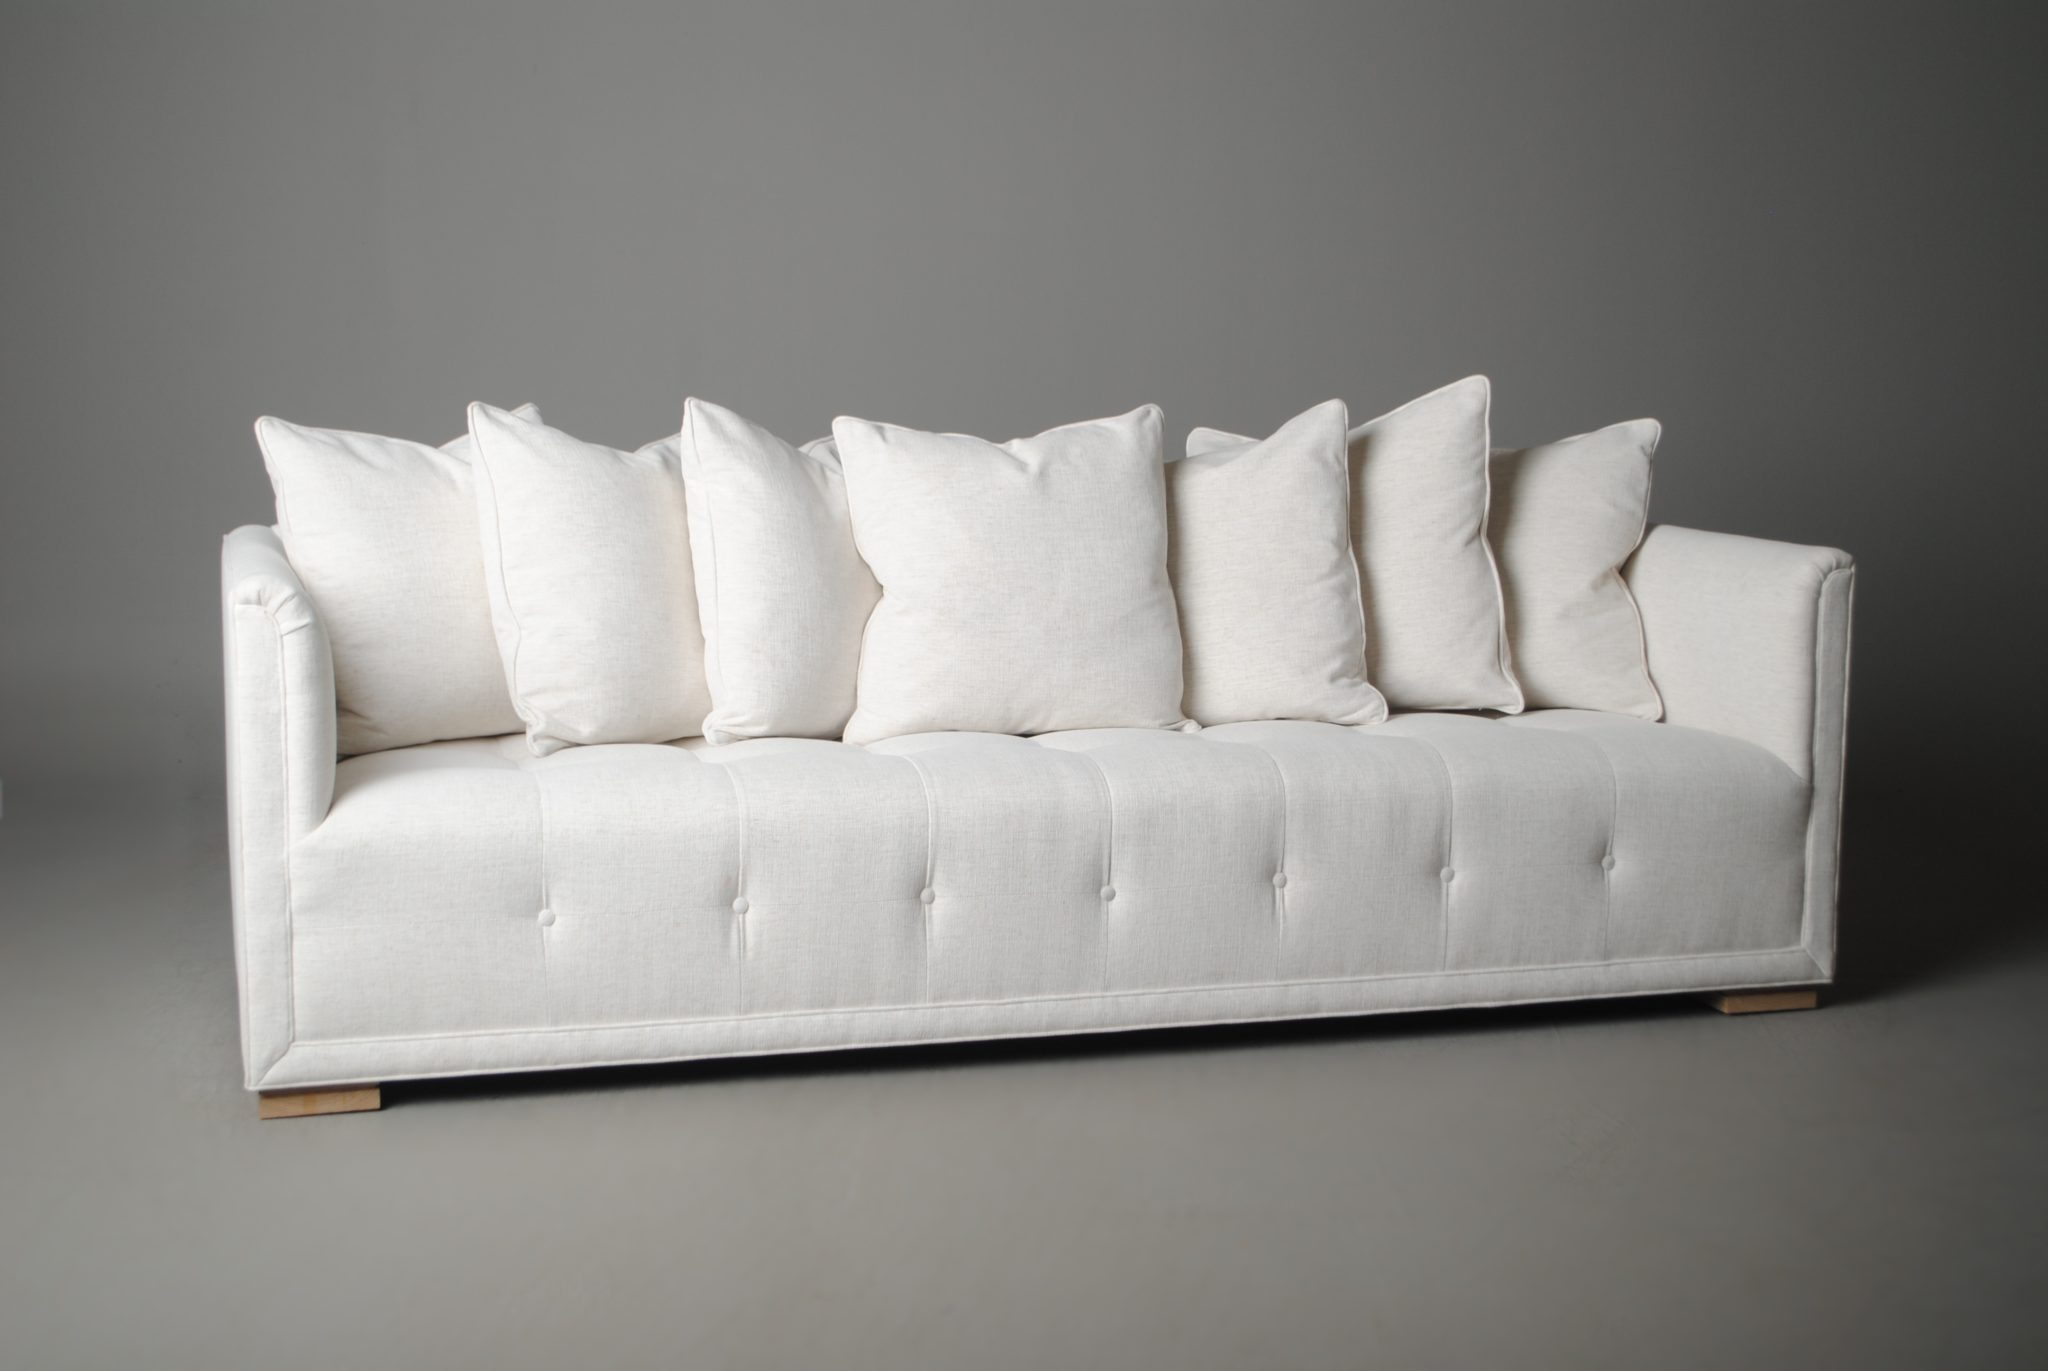 Also by Laslo, the Network Sofa has a tufted seat and back that almost emulates a netted pattern.